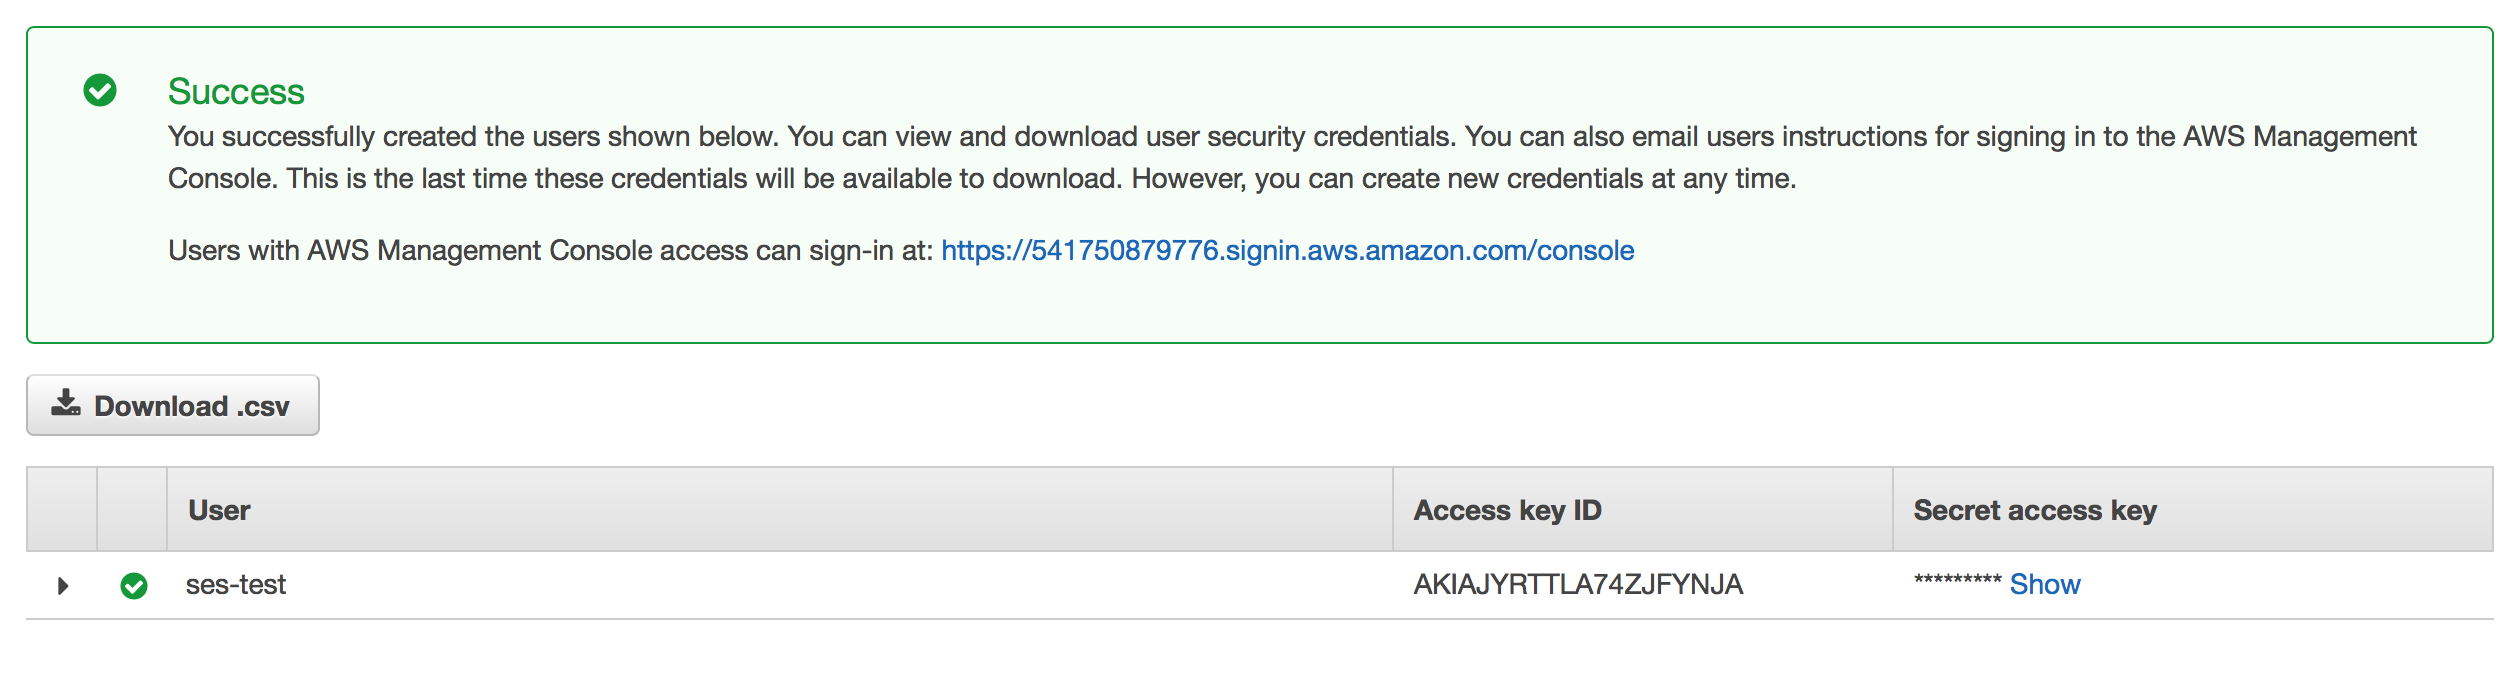 Creating credentials for Amazon SES on IAM service